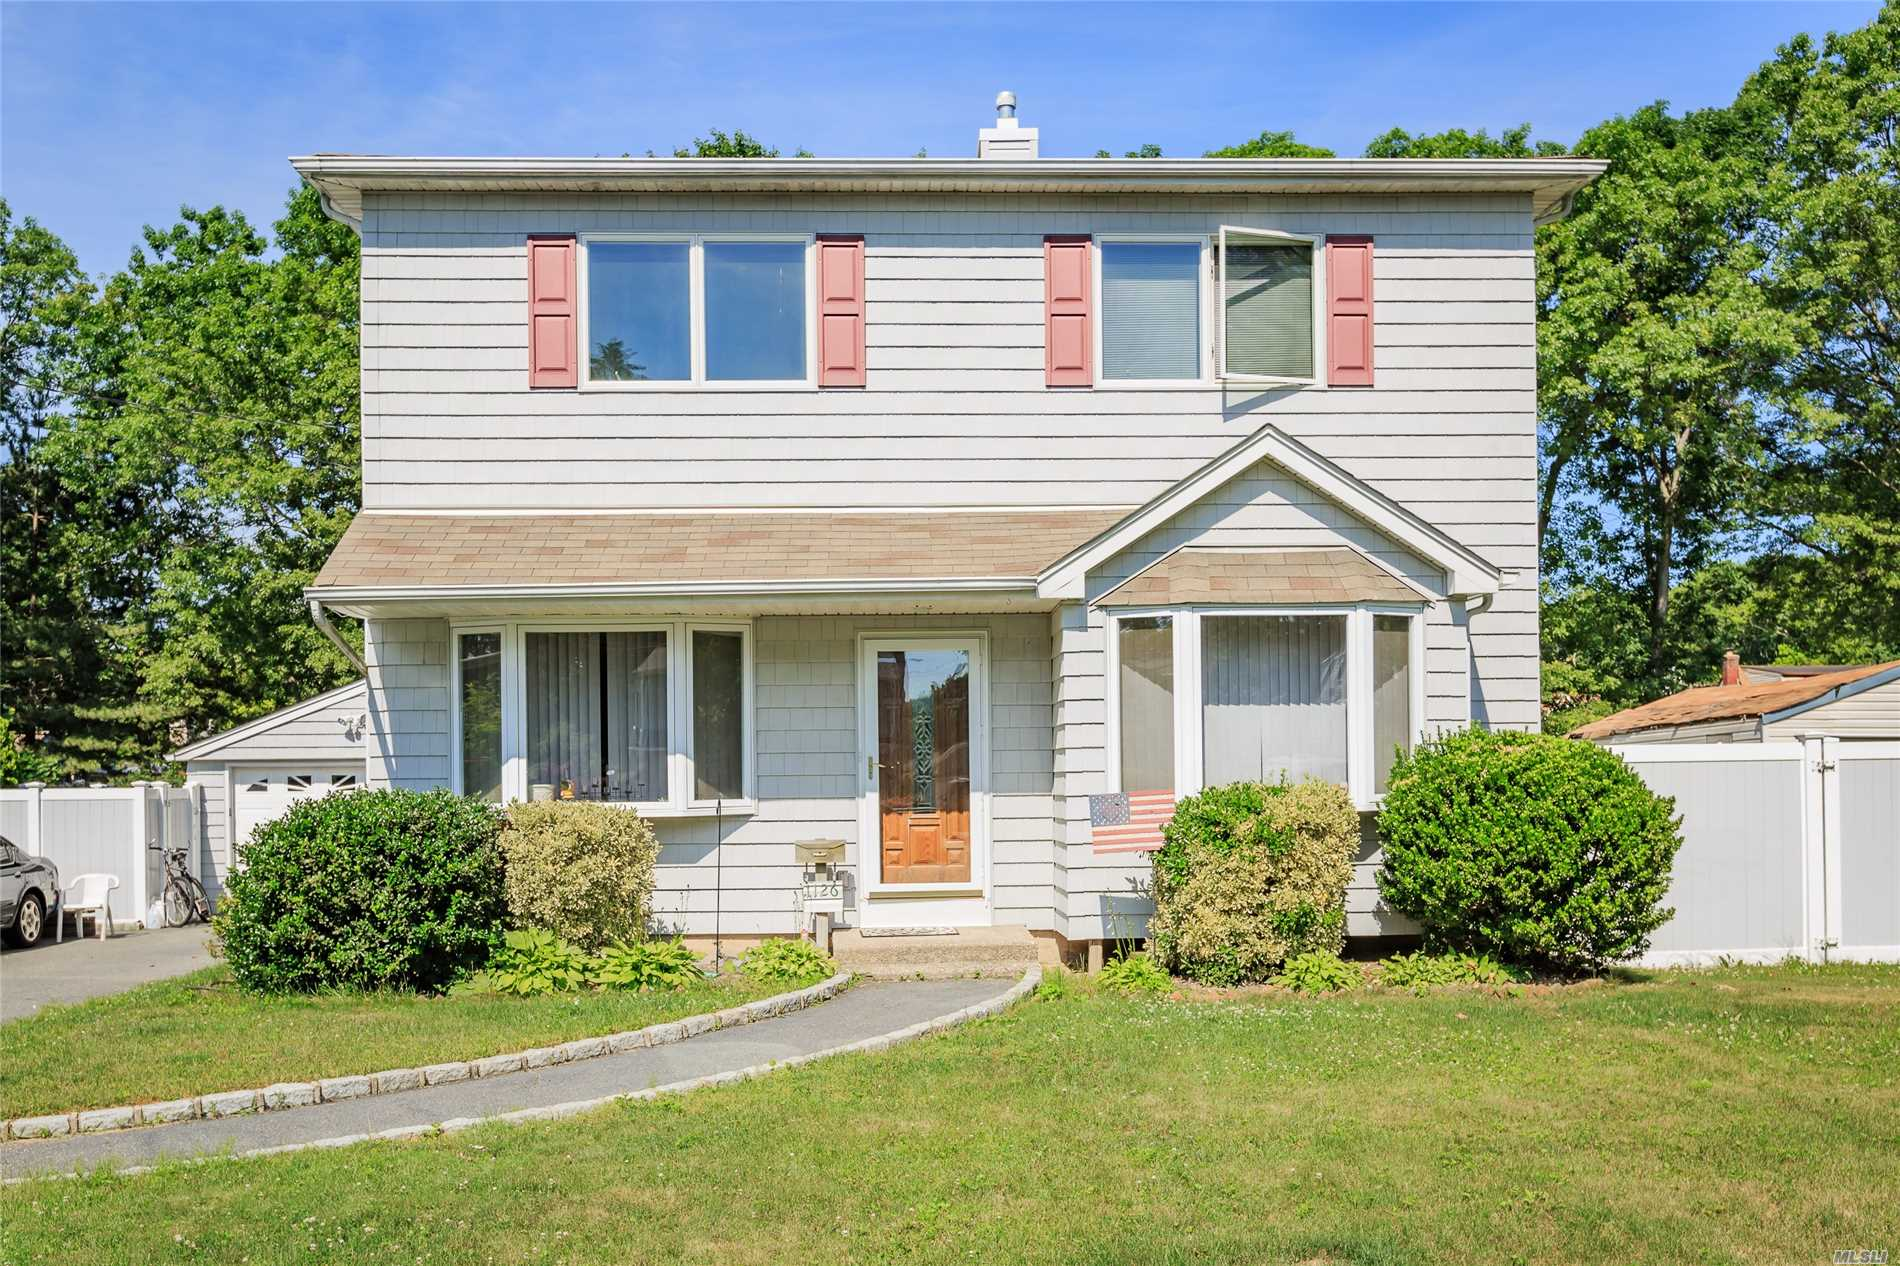 1126 Hyman Ave - Bay Shore, New York